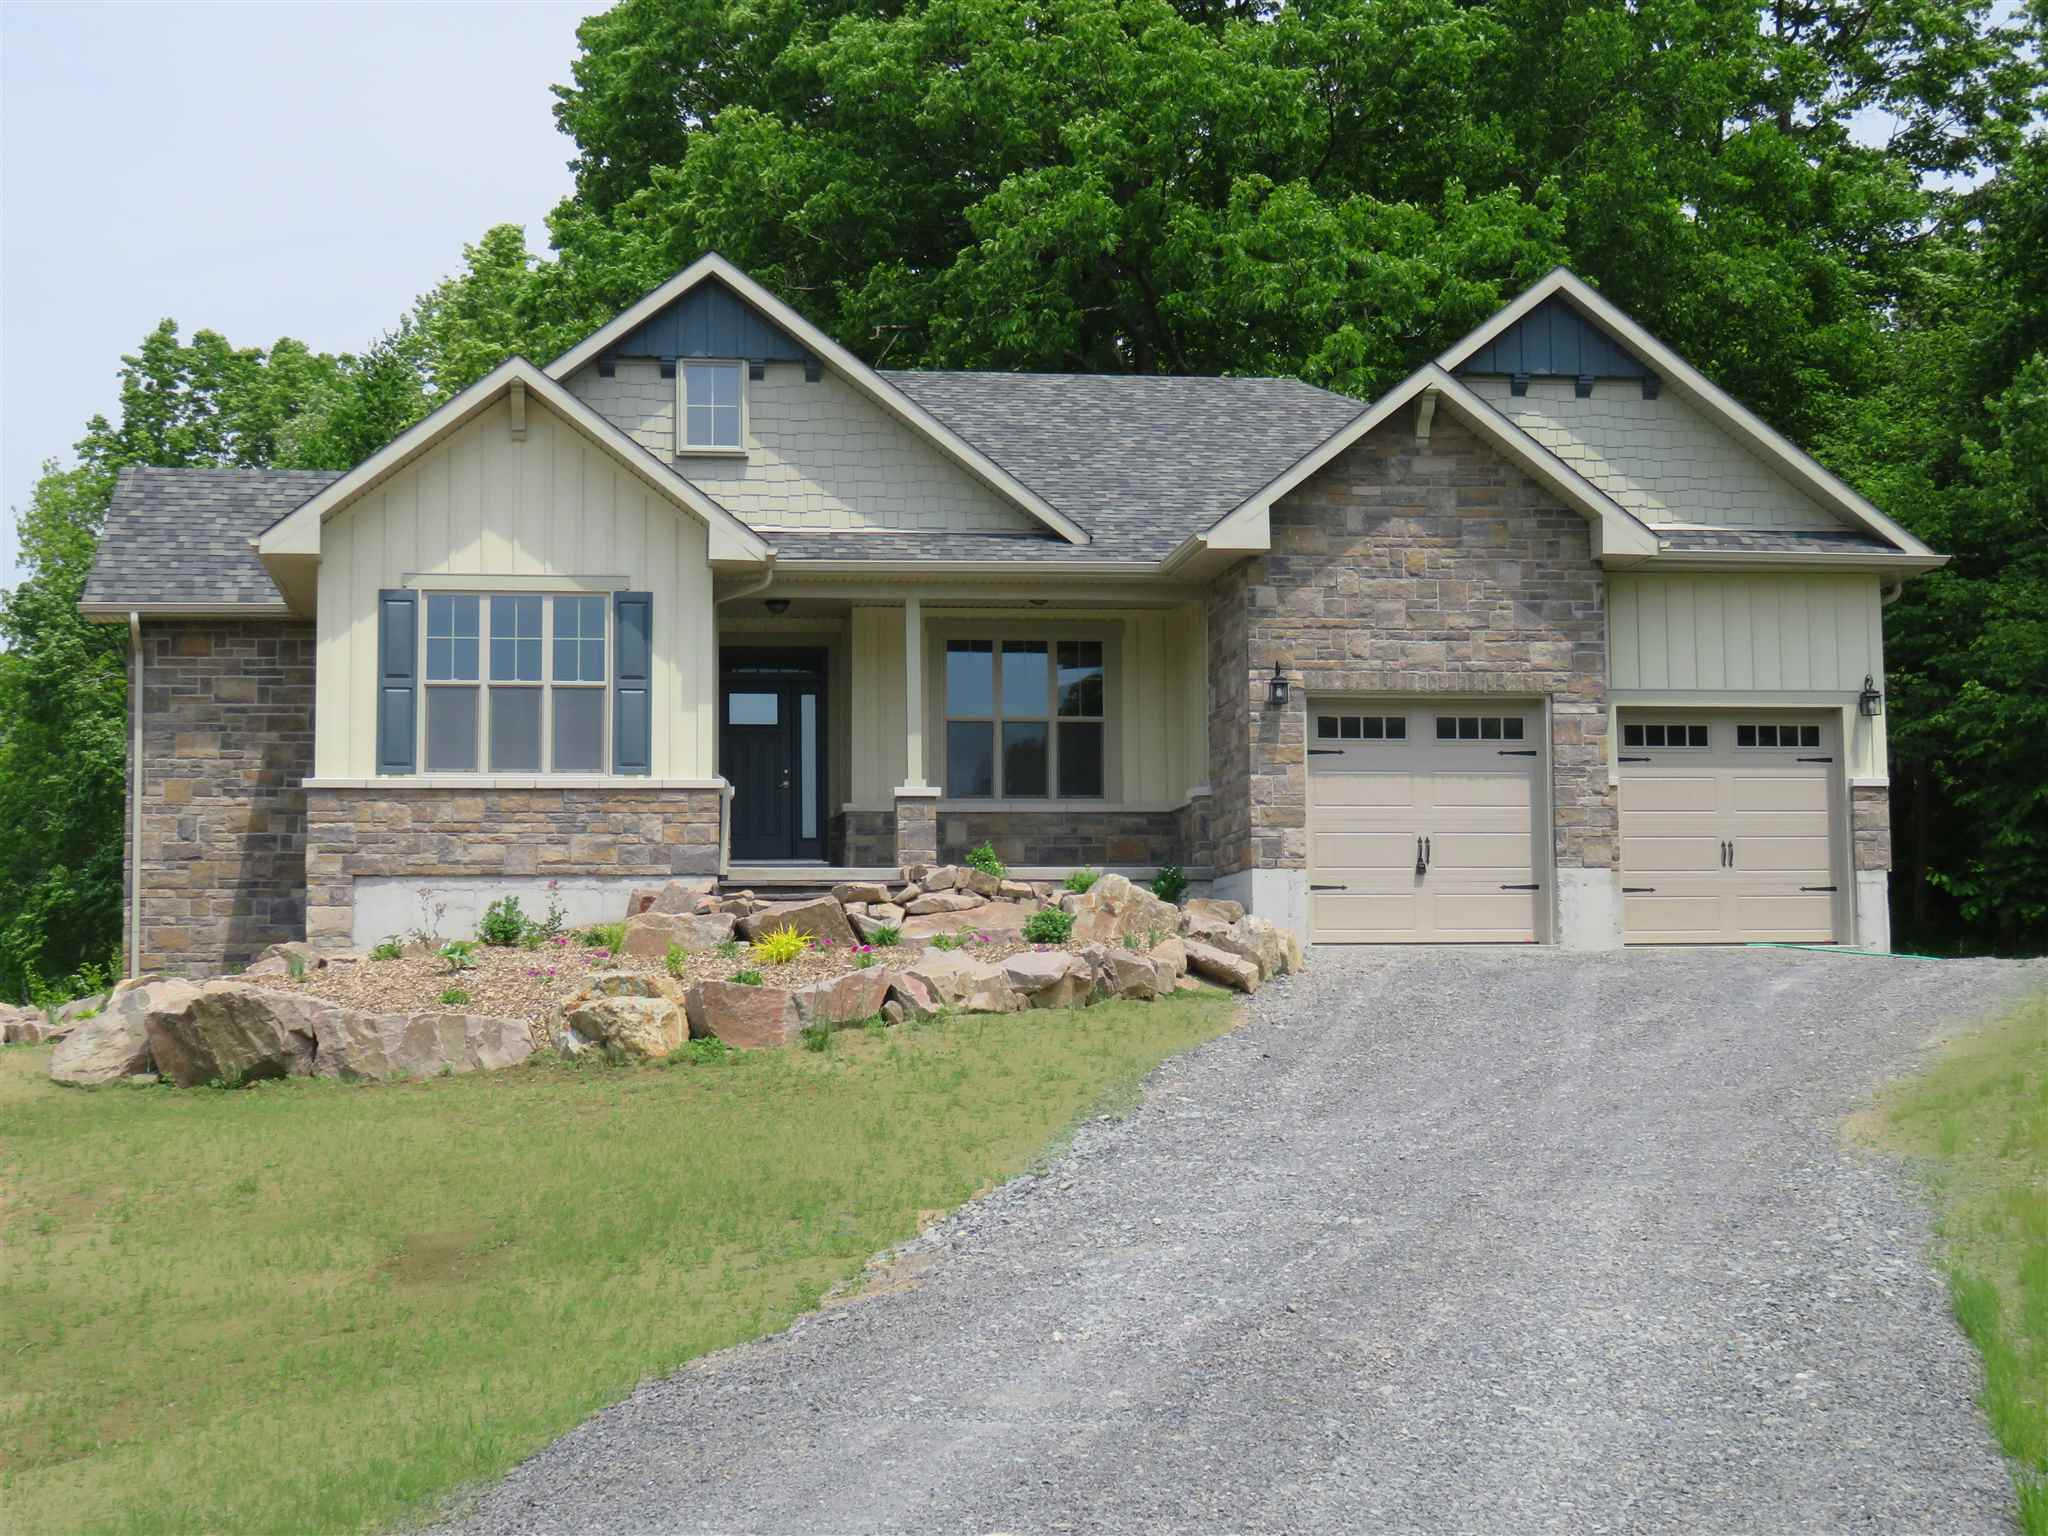 1071 Cranberry Cove Lane, South Frontenac, Ontario, Canada